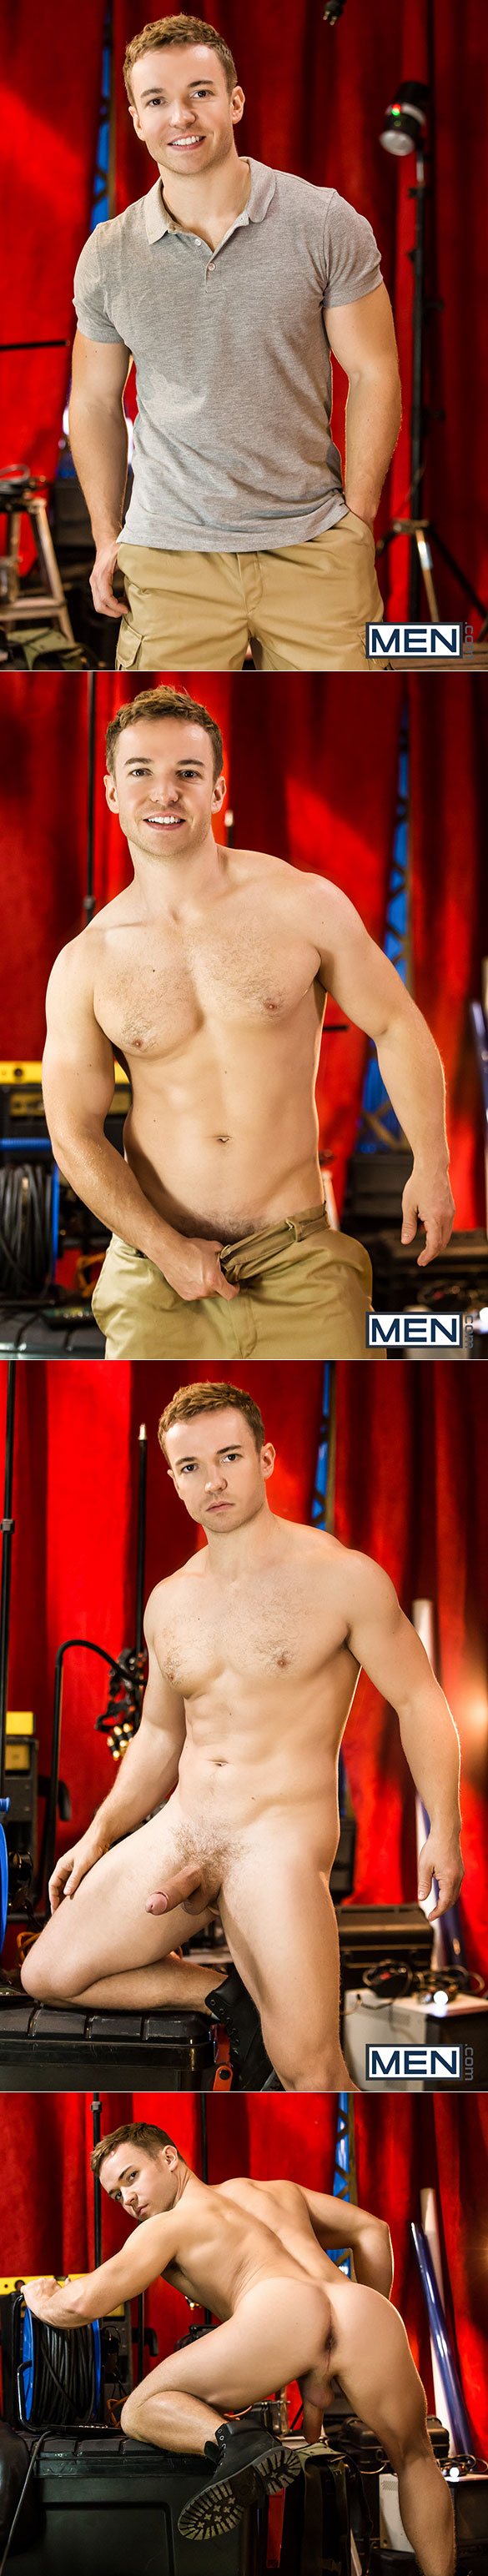 """Men.com: Gabriel Cross and Theo Ford flip fuck in """"Paranormal, Part 2"""""""